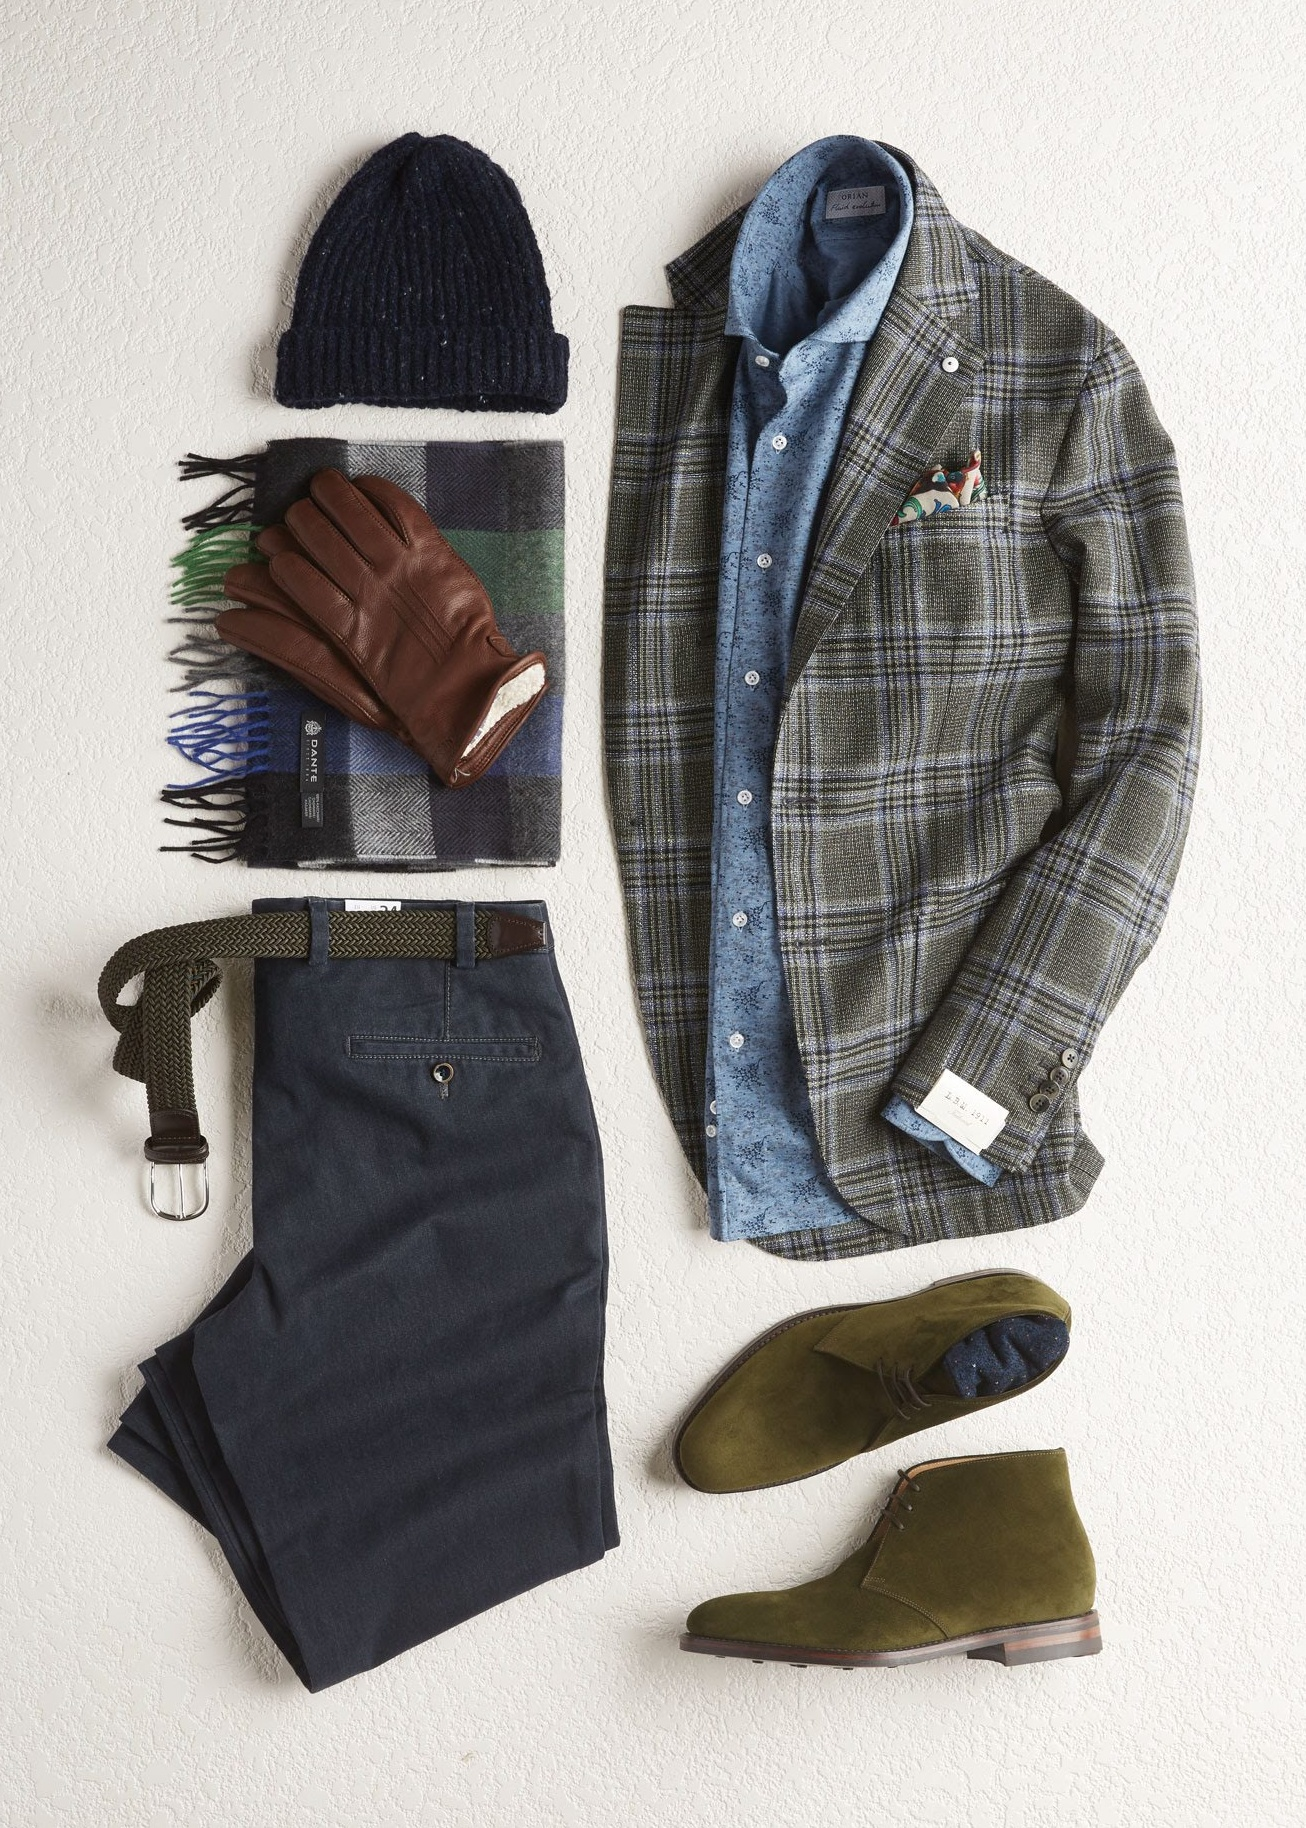 L.B.M. 1911 Green Check Jacket Outfit - LALONDE's